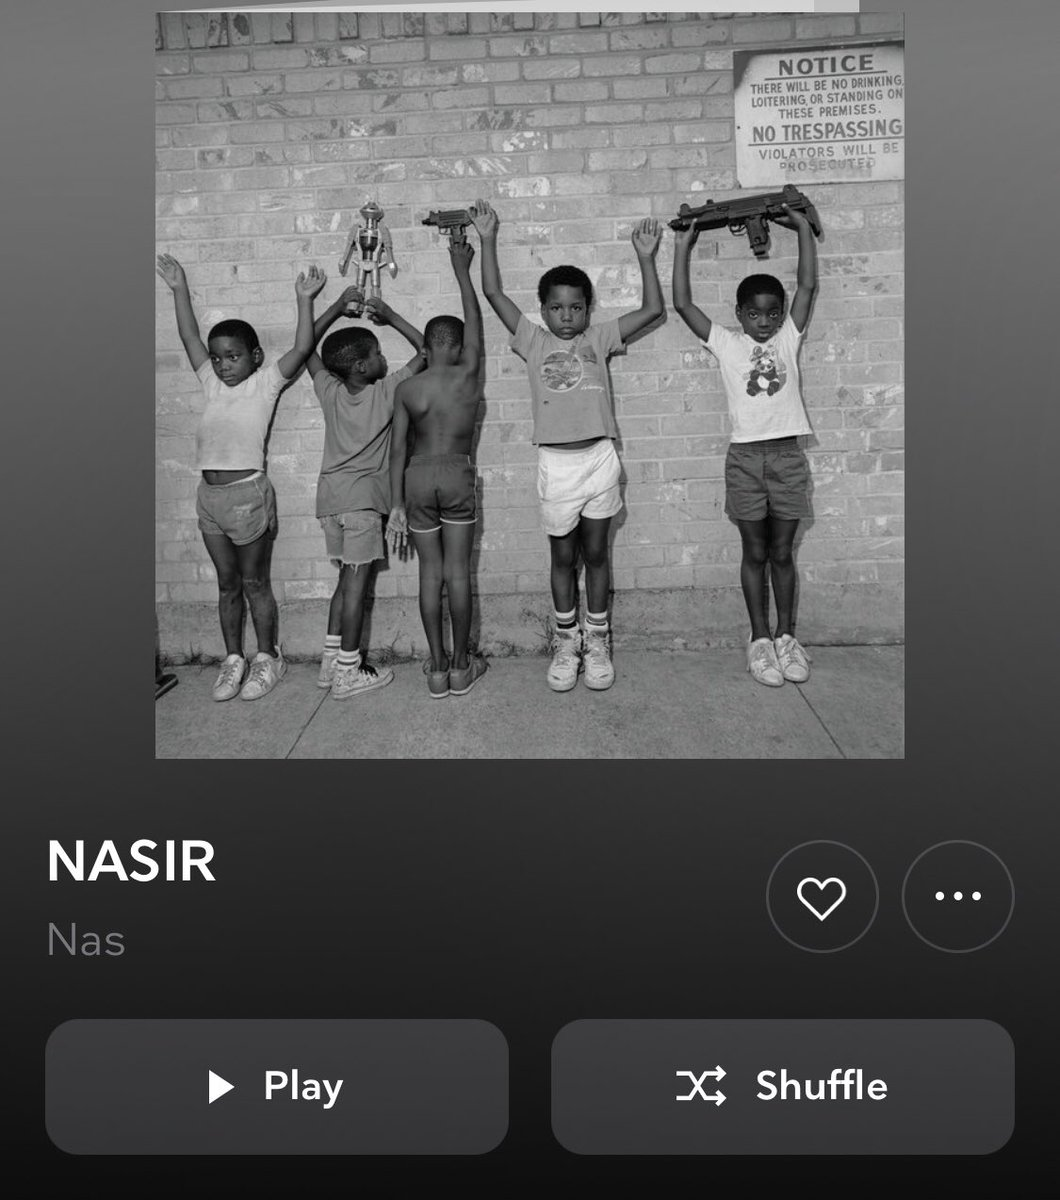 Let's see what's up with this new Nas album... #Nasir #nowplaying #tidal